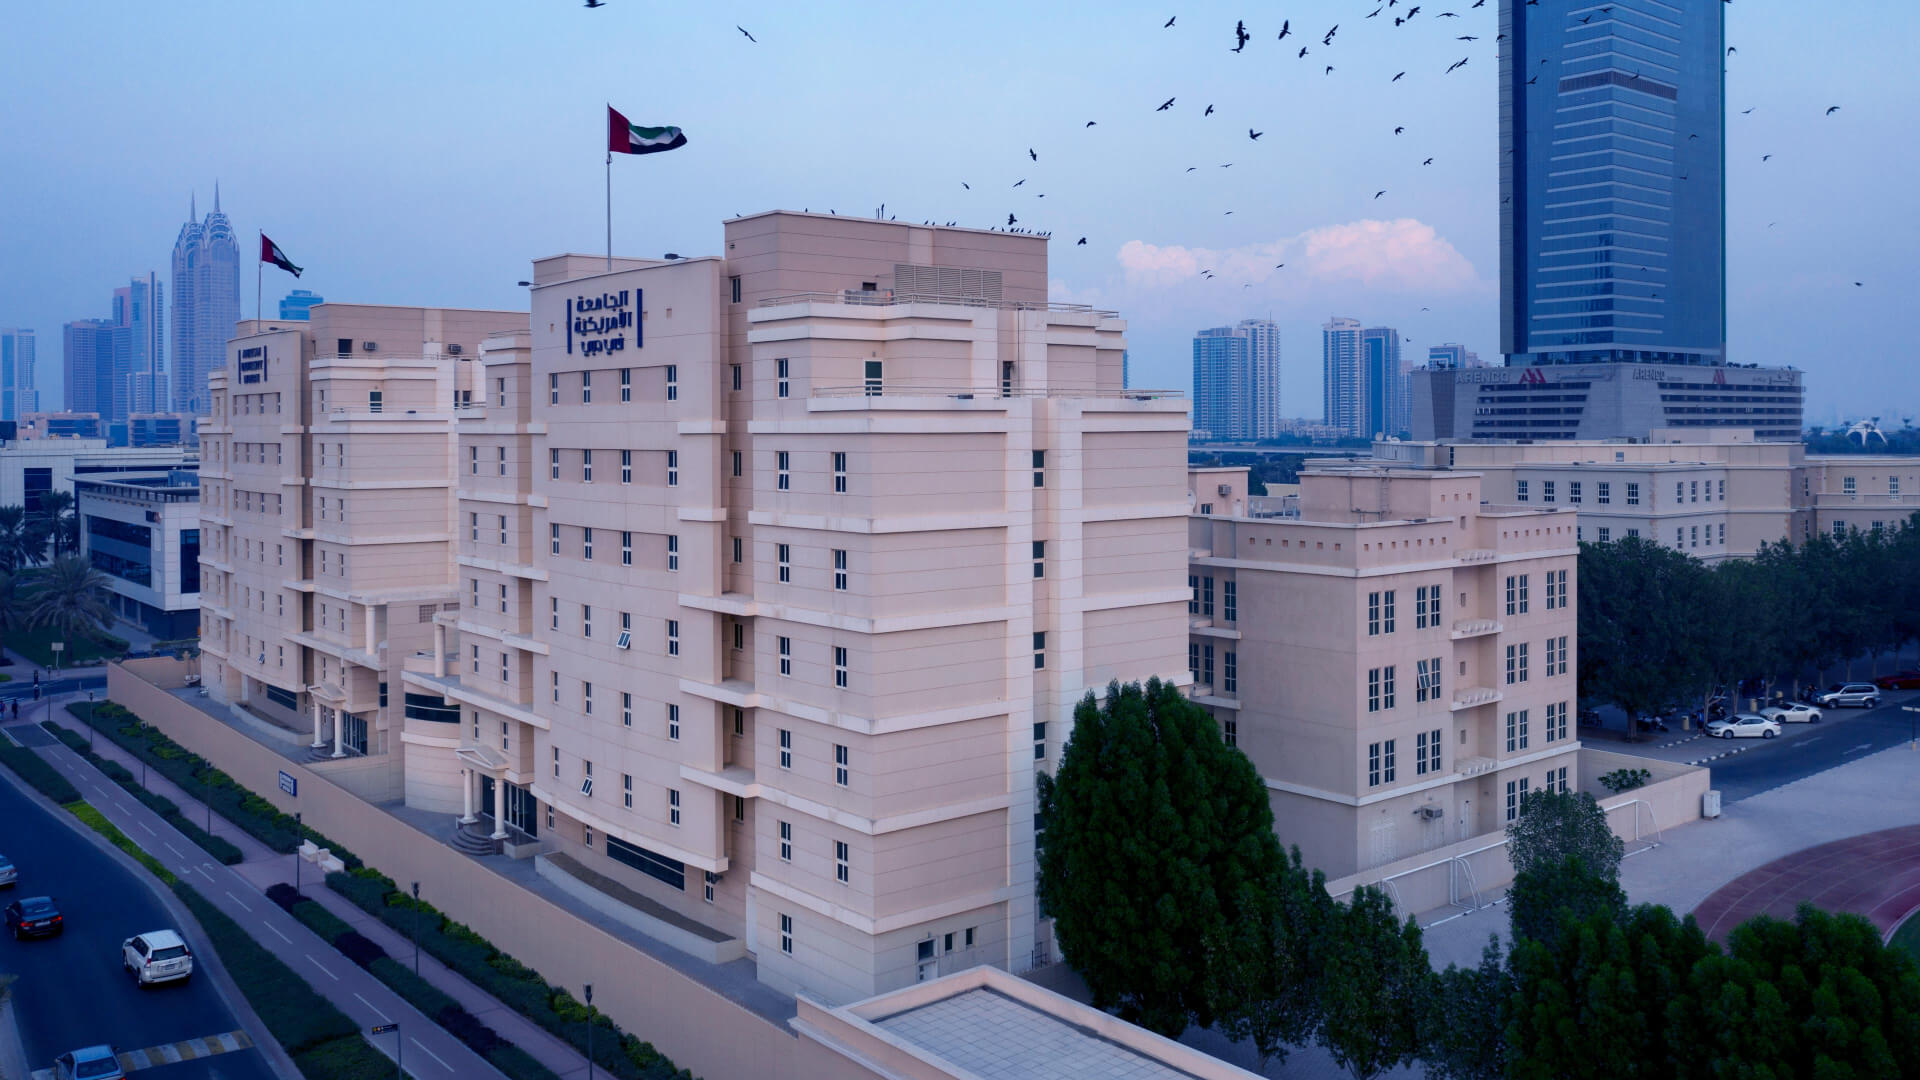 Accommodation - American University in Dubai